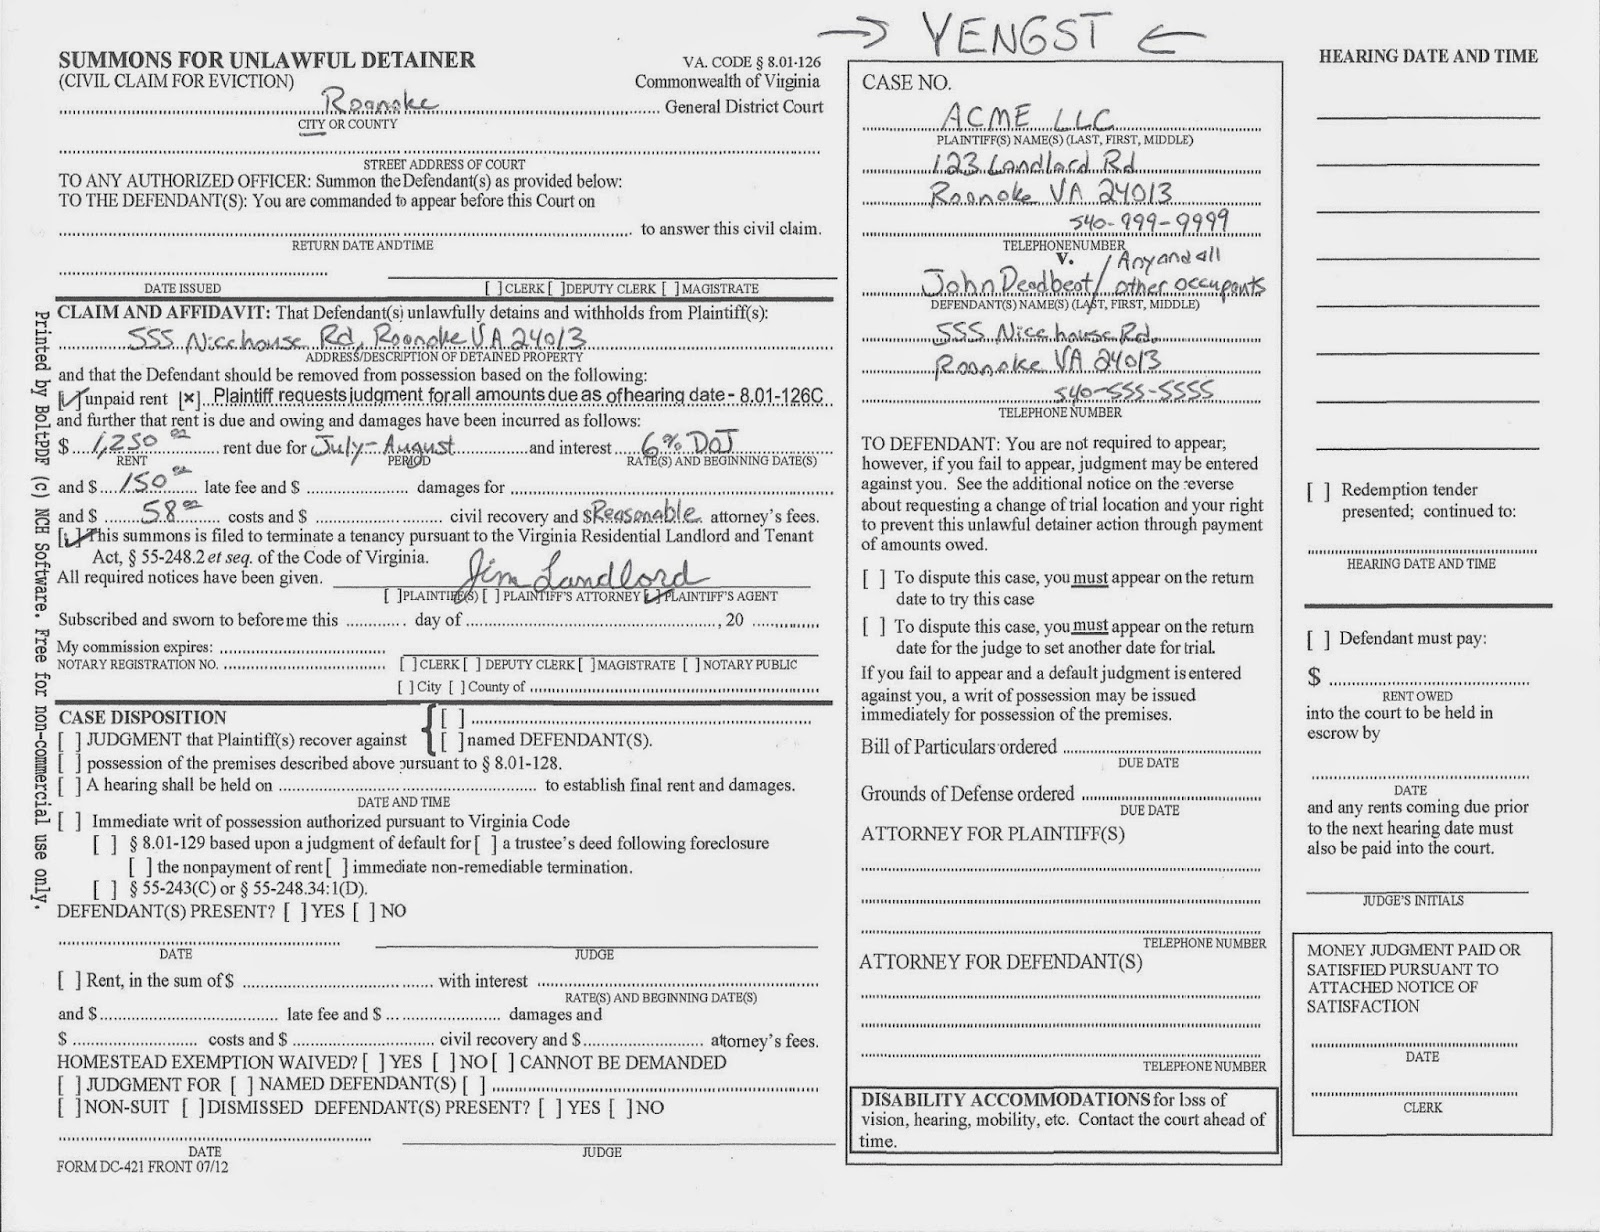 Real Estate Investors Of Virginia How To Fill Out A Summons For